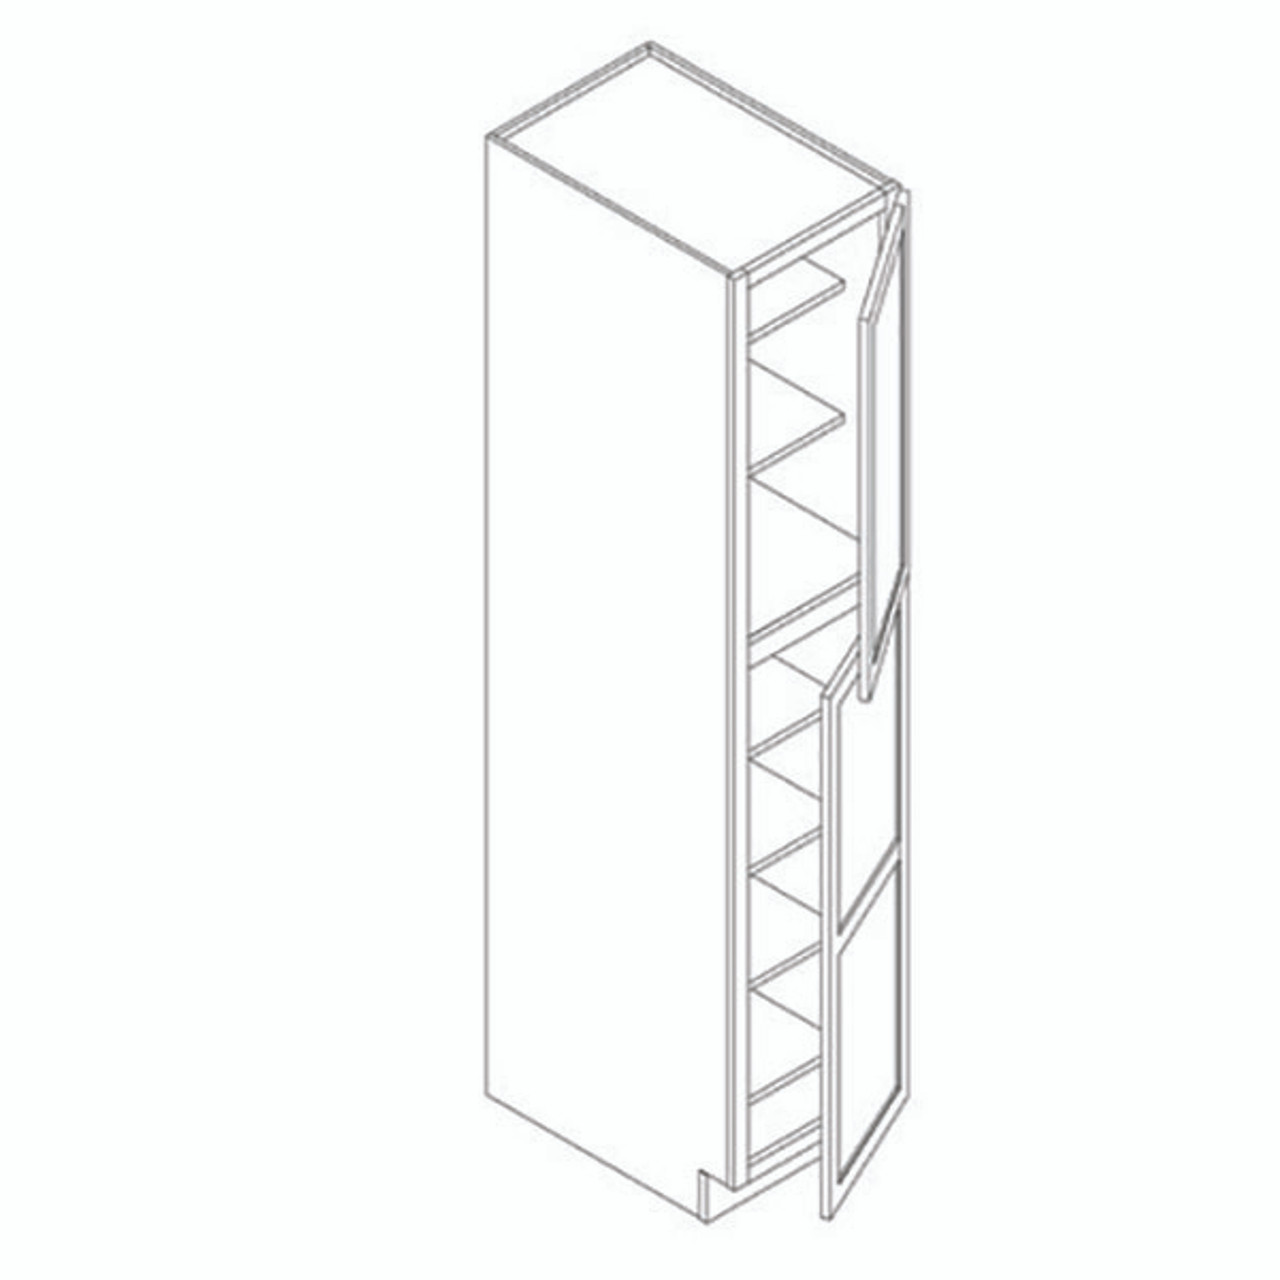 18 Inch x 84 Inch Pantry Cabinet | Grey | Soft Close | Ready to Assemble